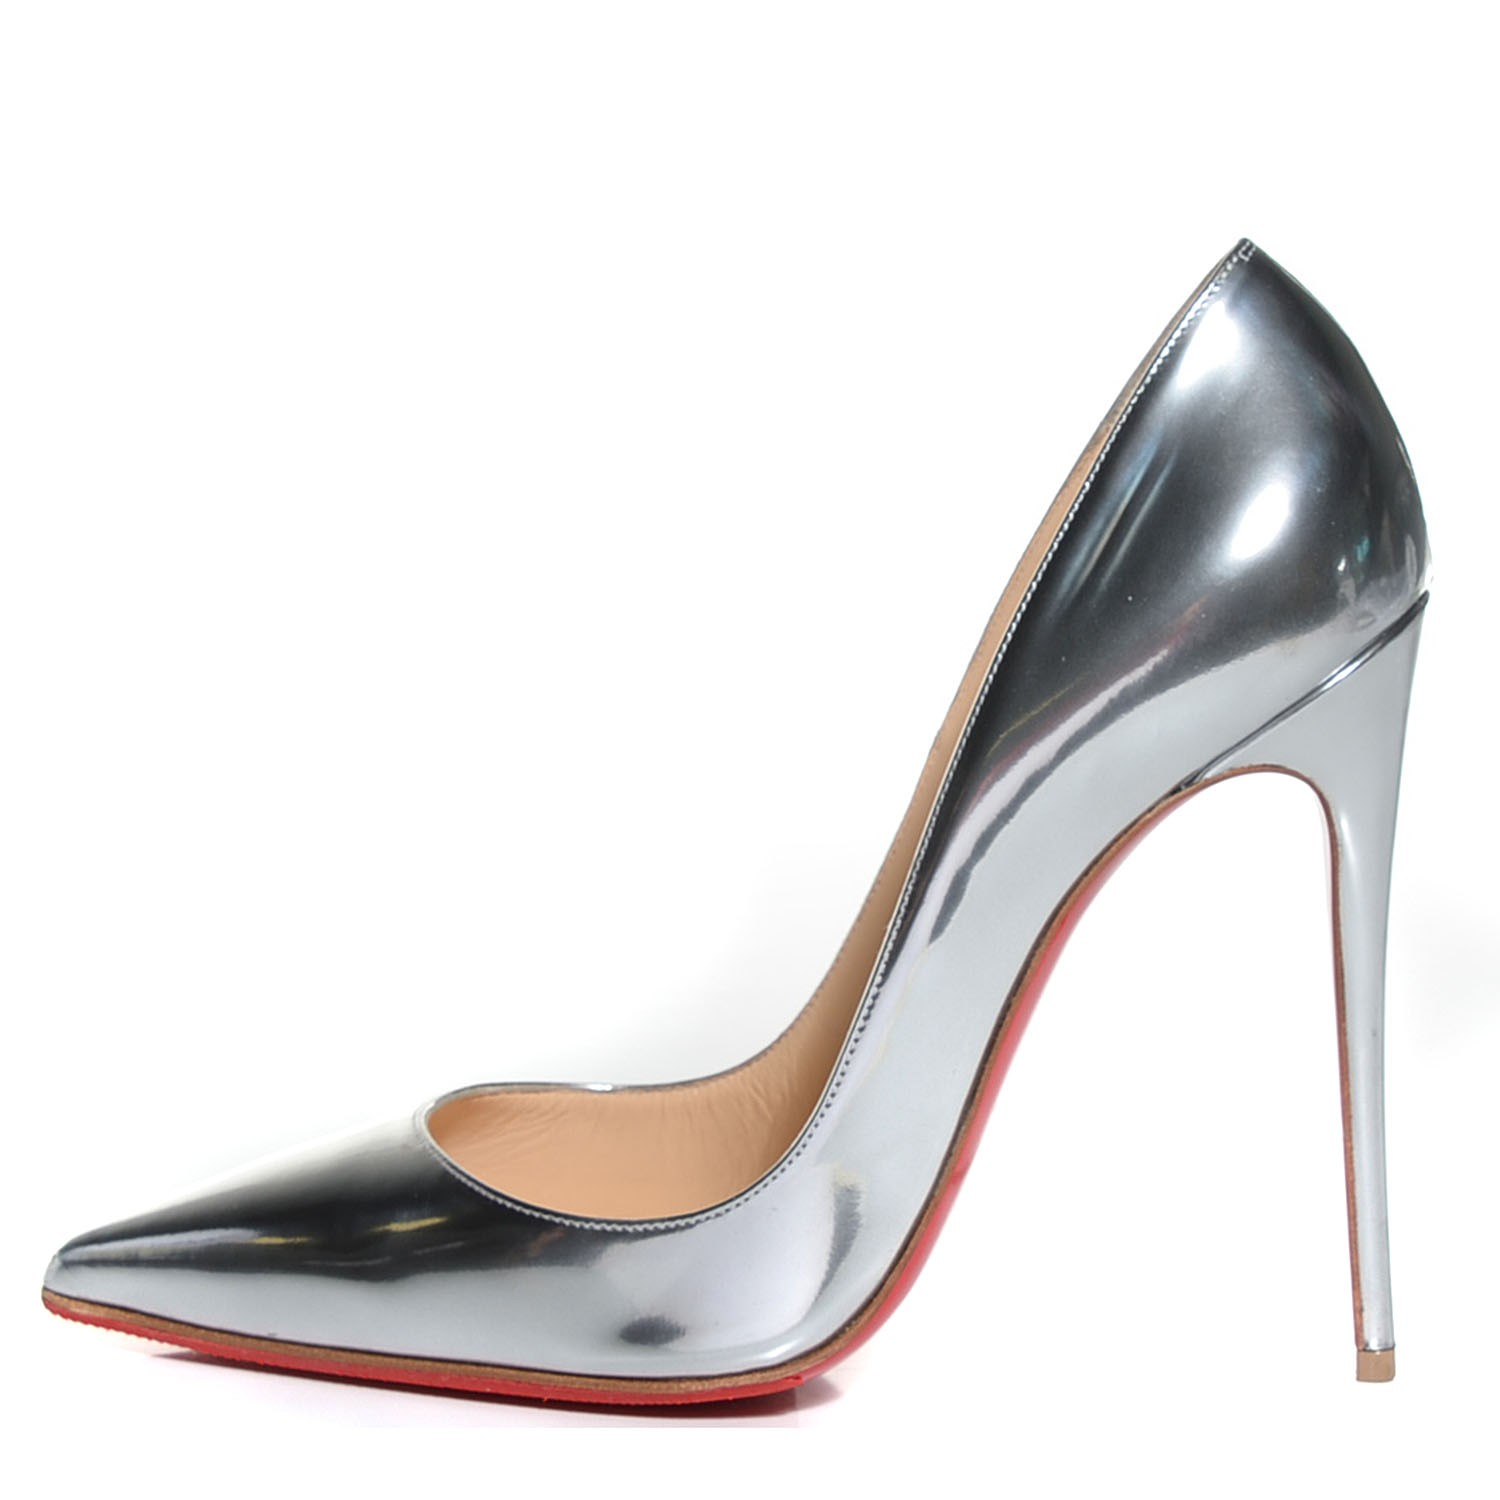 check out cca5c 47b9f CHRISTIAN LOUBOUTIN Metallic Calfskin So Kate 120 Pumps 38 ...